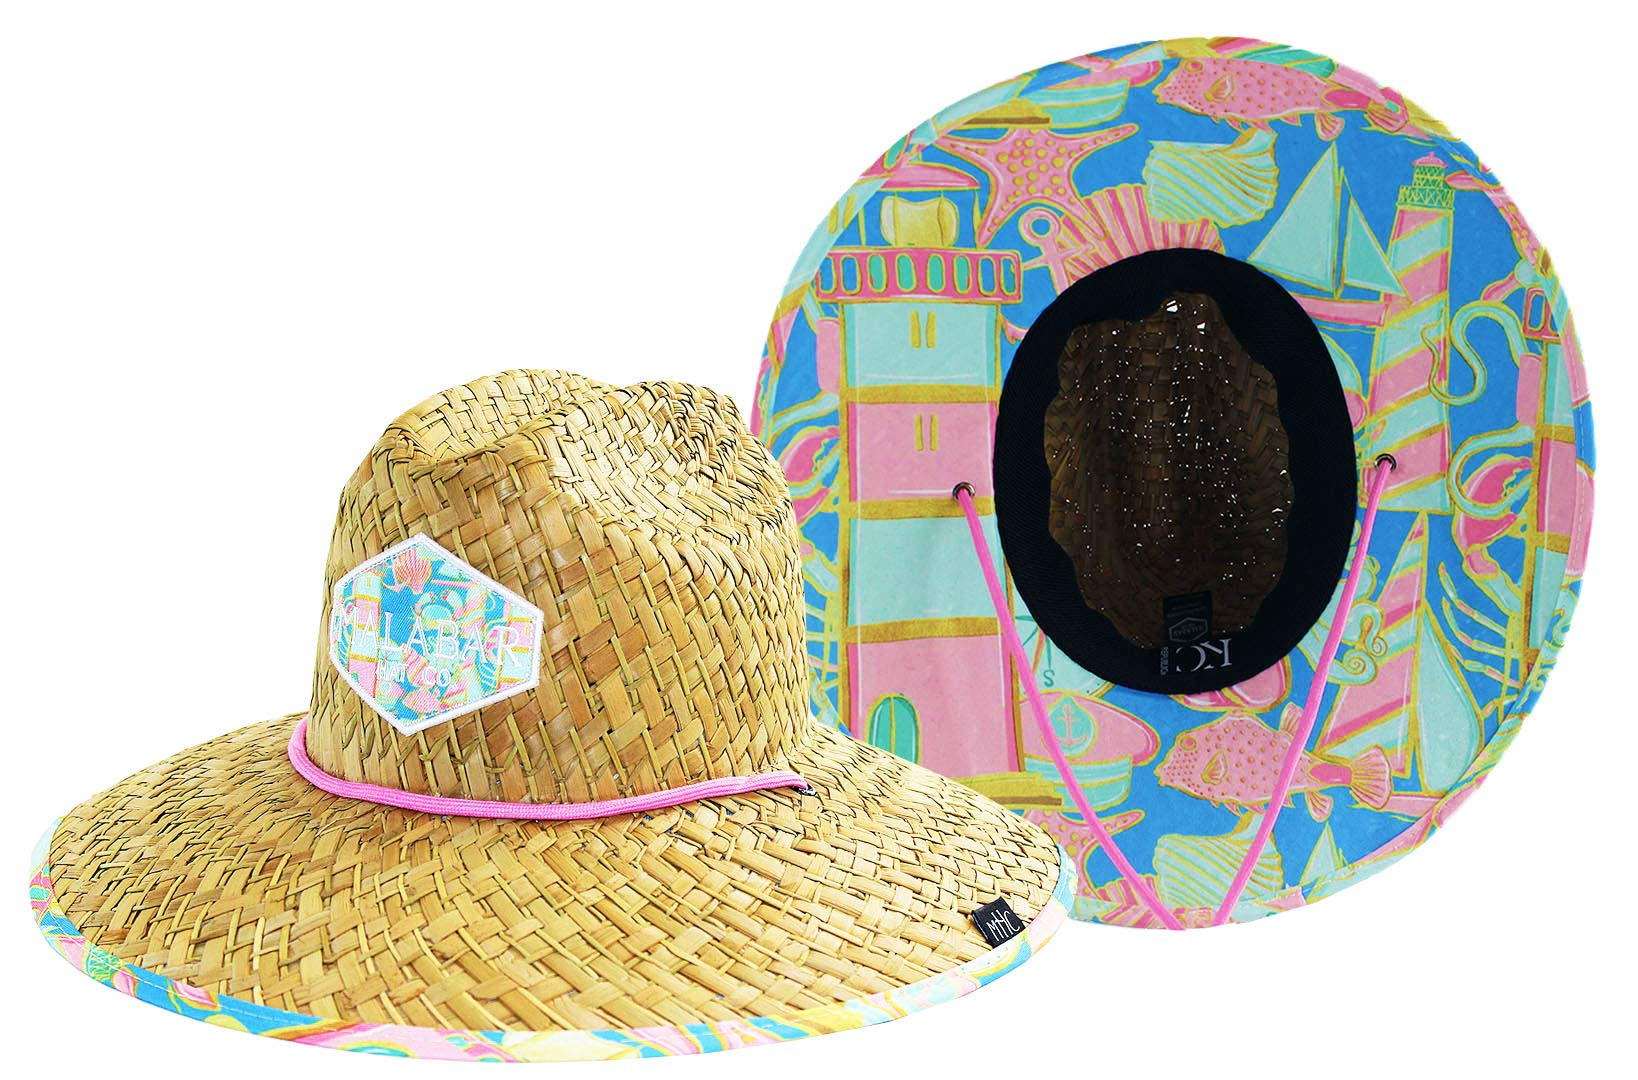 Woman''s Sun Hat Straw Hat with Fabric Print Lifeguard Hat Great for Beach Ocean, Cruise, and Outdoor, Malabar Hat Co. (Light House)